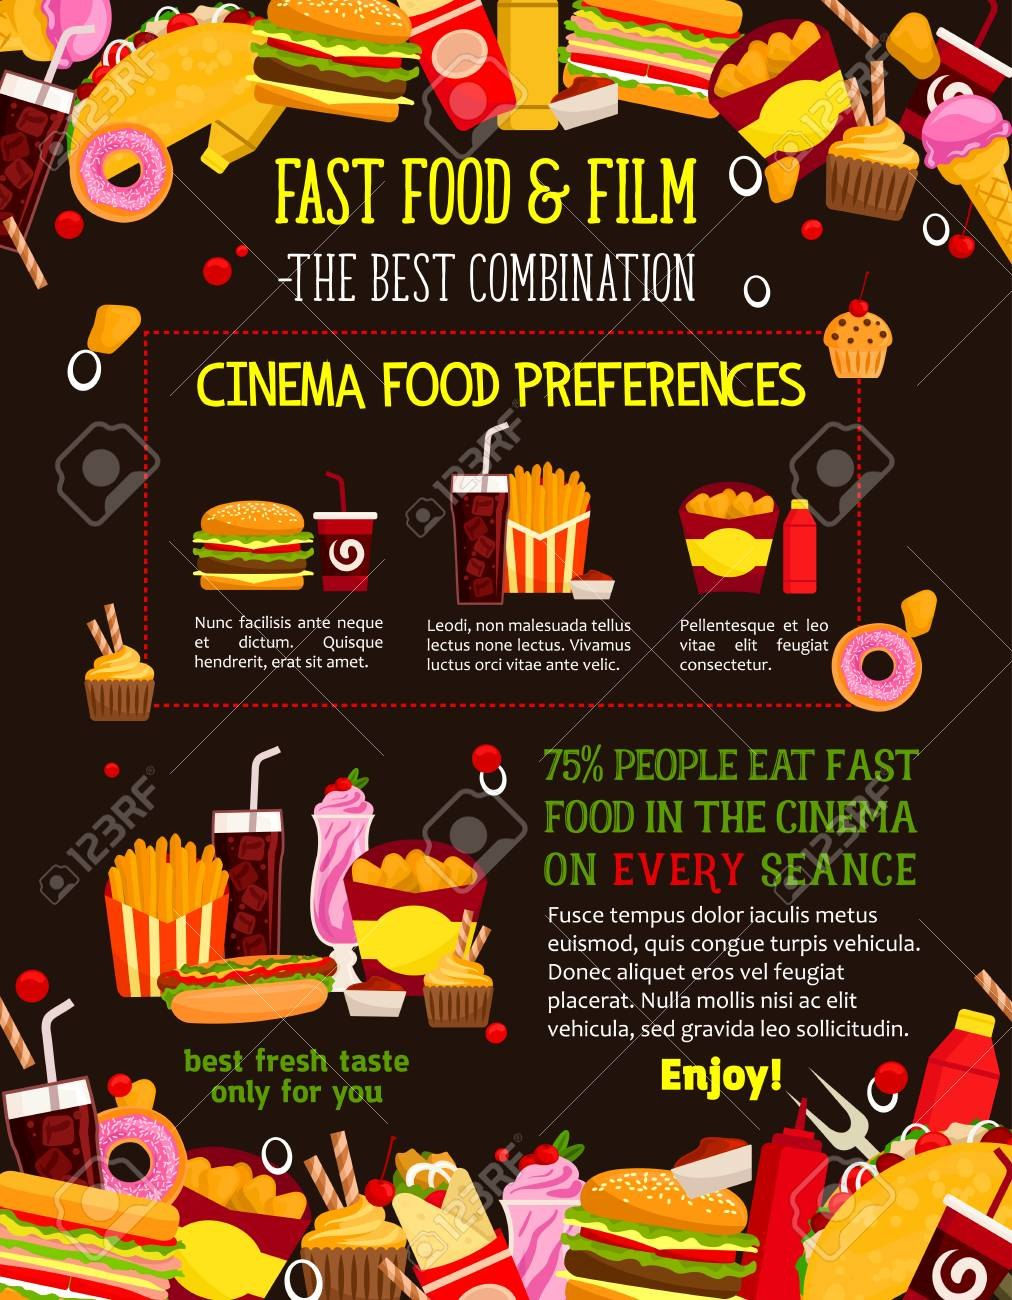 Fast Food Menu Design Template For Cinema Bistro Or Movie Theater Pertaining To Fast Food Menu Design Templates